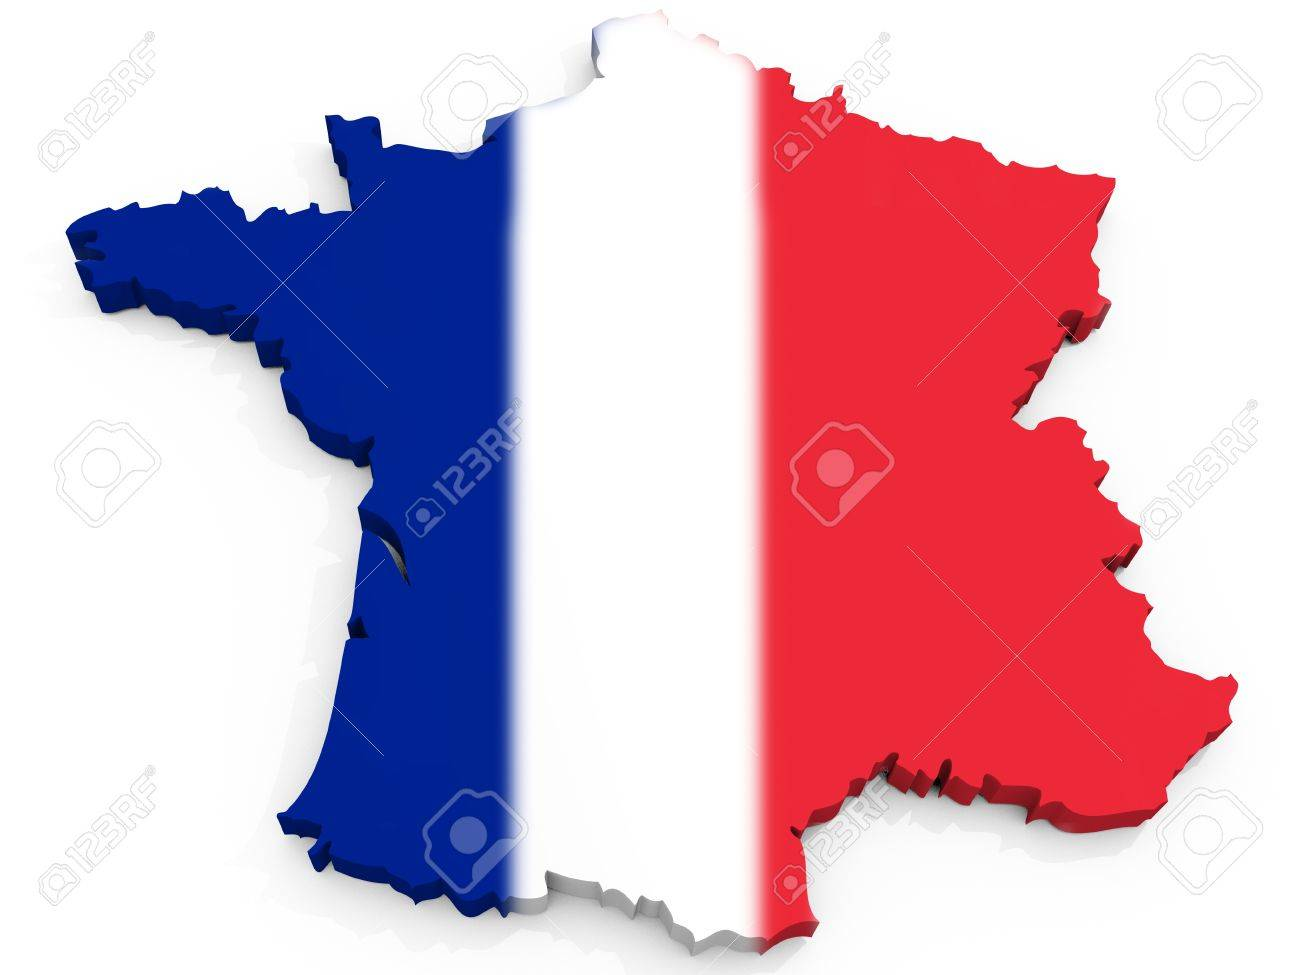 3D Map Of France With Flag  French Republic Stock Photo  Picture And     3D Map of France with flag  French Republic Stock Photo   10385147